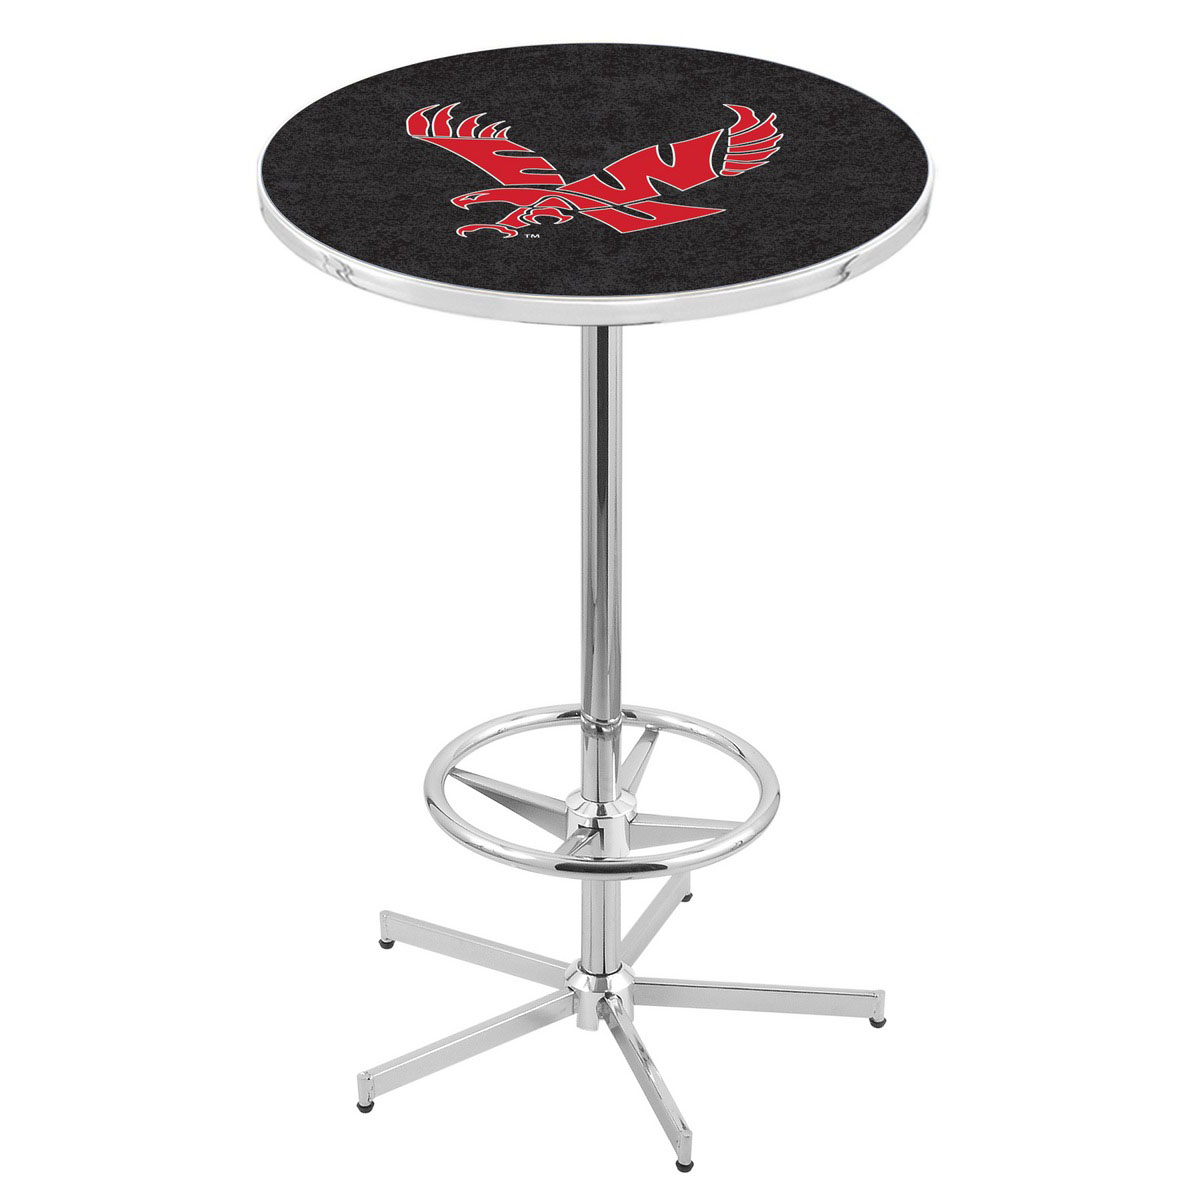 Outstanding Chrome Eastern Washington Pub Table Product Photo